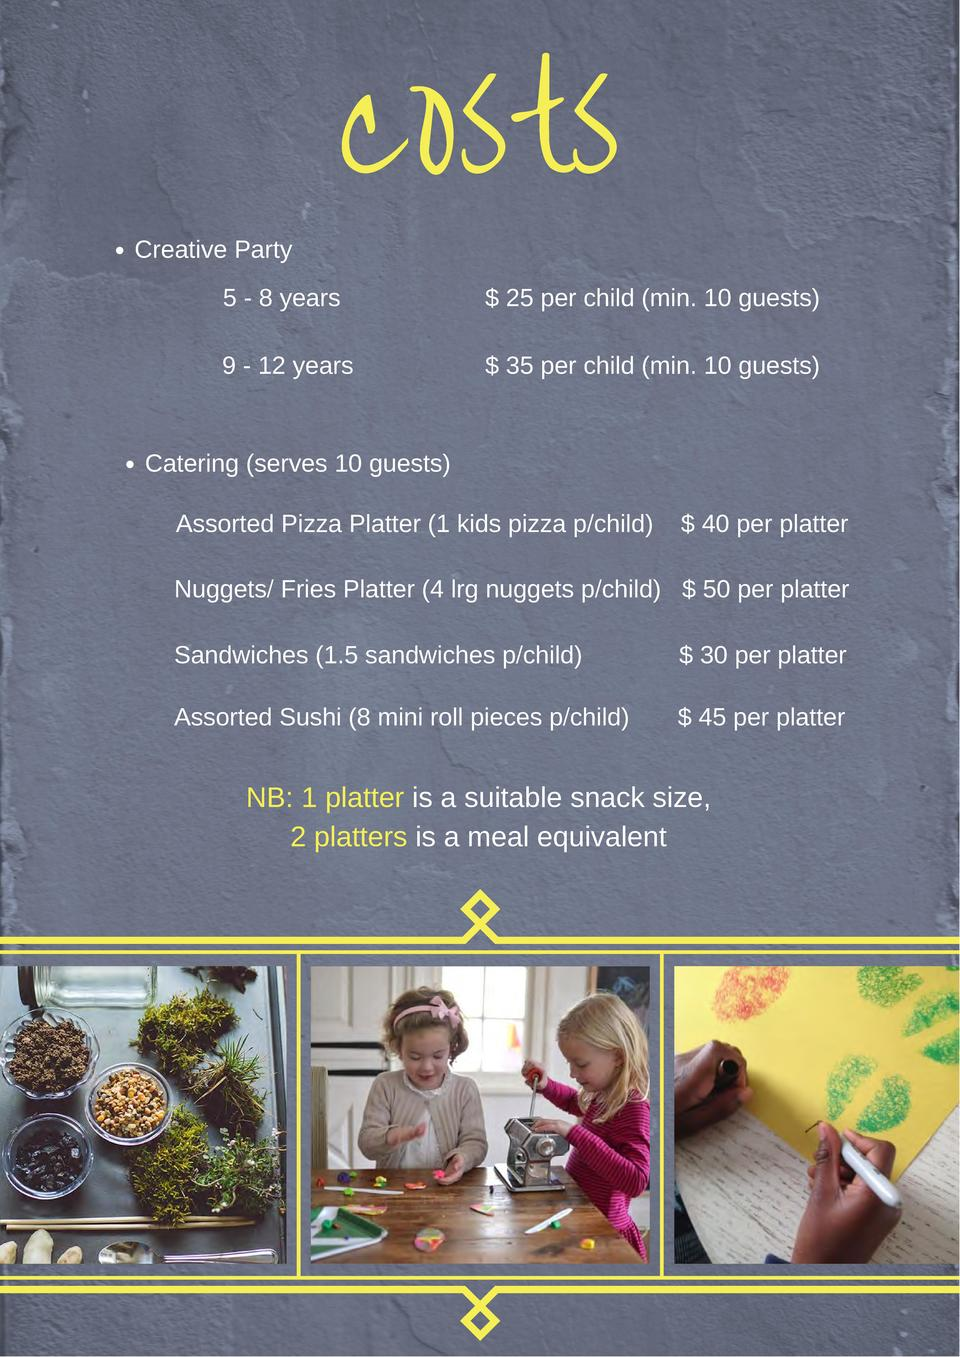 Creative Party  costs  5 - 8 years    25 per child  min. 10 guests   9 - 12 years    35 per child  min. 10 guests   Cateri...